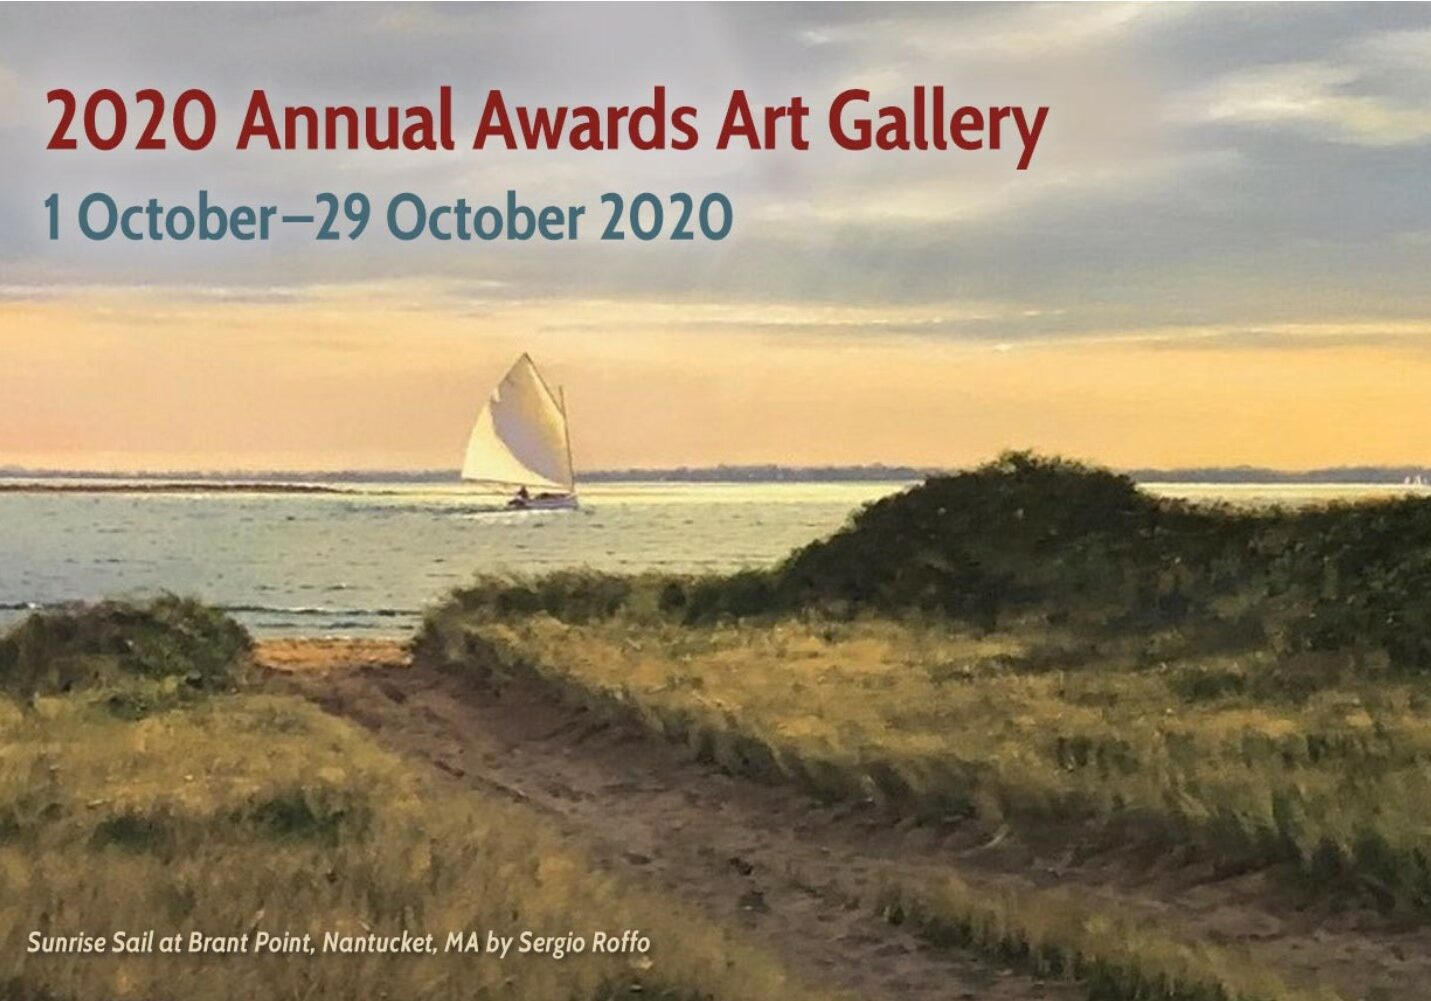 2020 Annual Awards Art Gallery Post